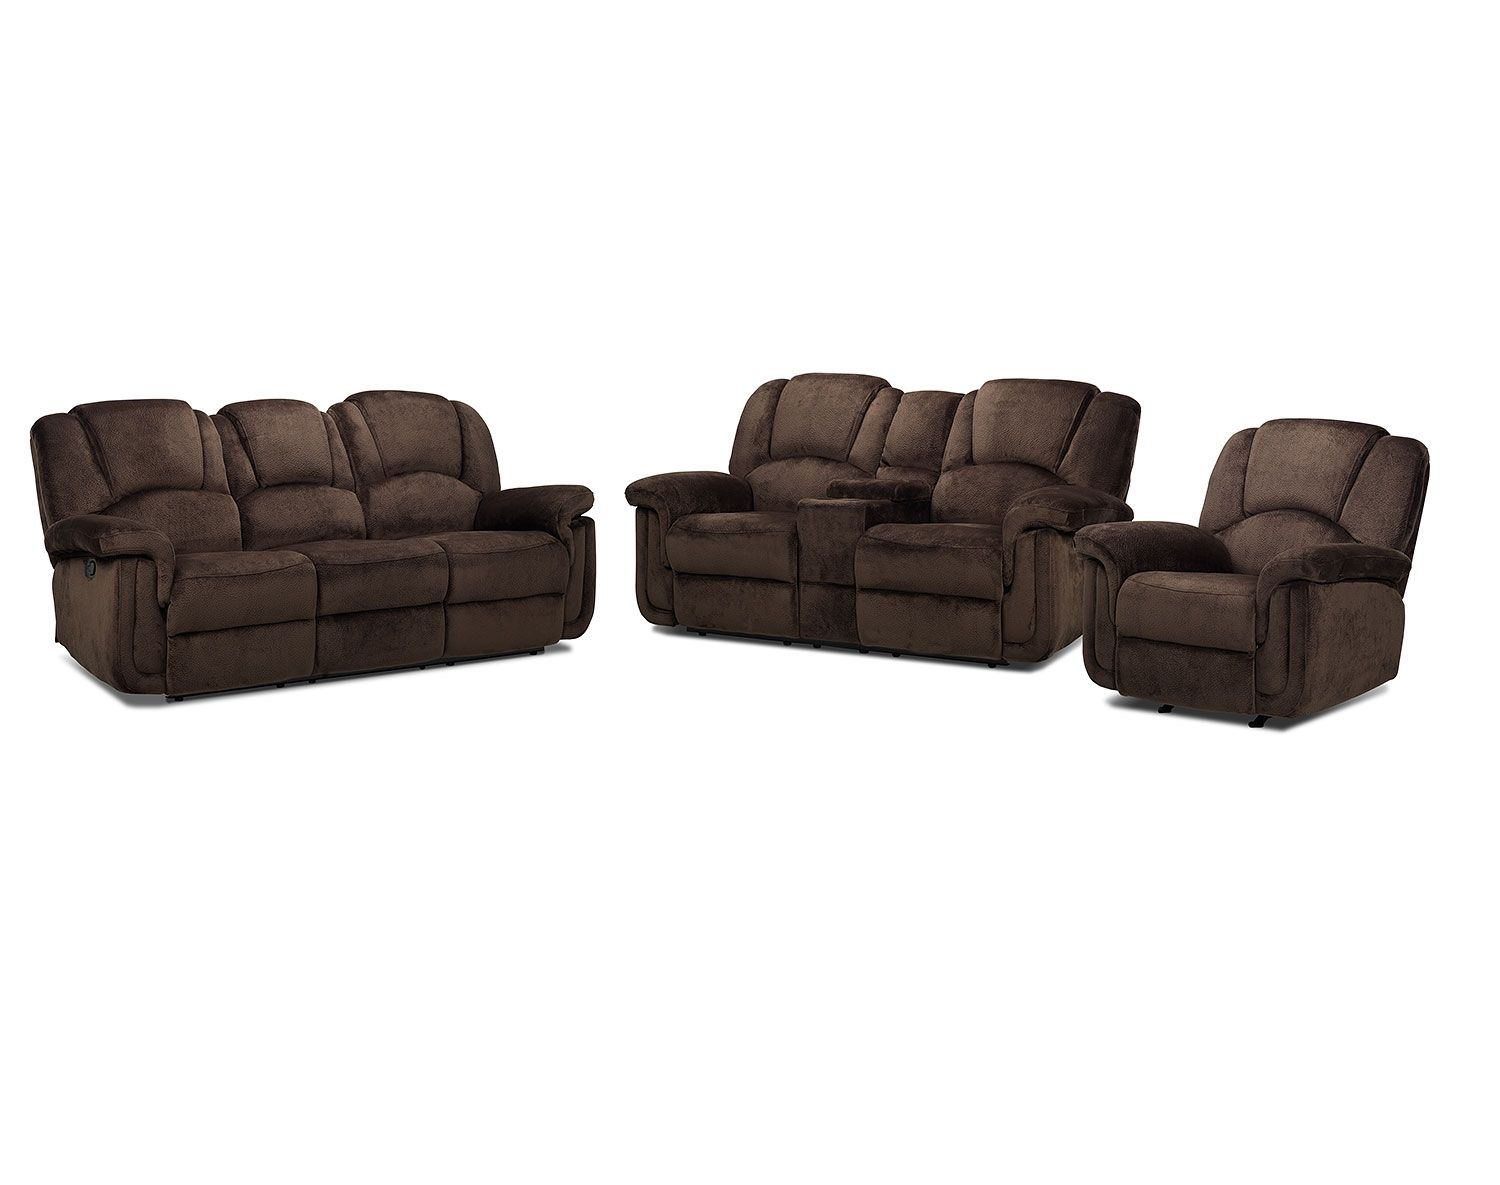 Pitch Upholstery Collection Leon S Furniture Auctions Living Room Furniture Love Seat